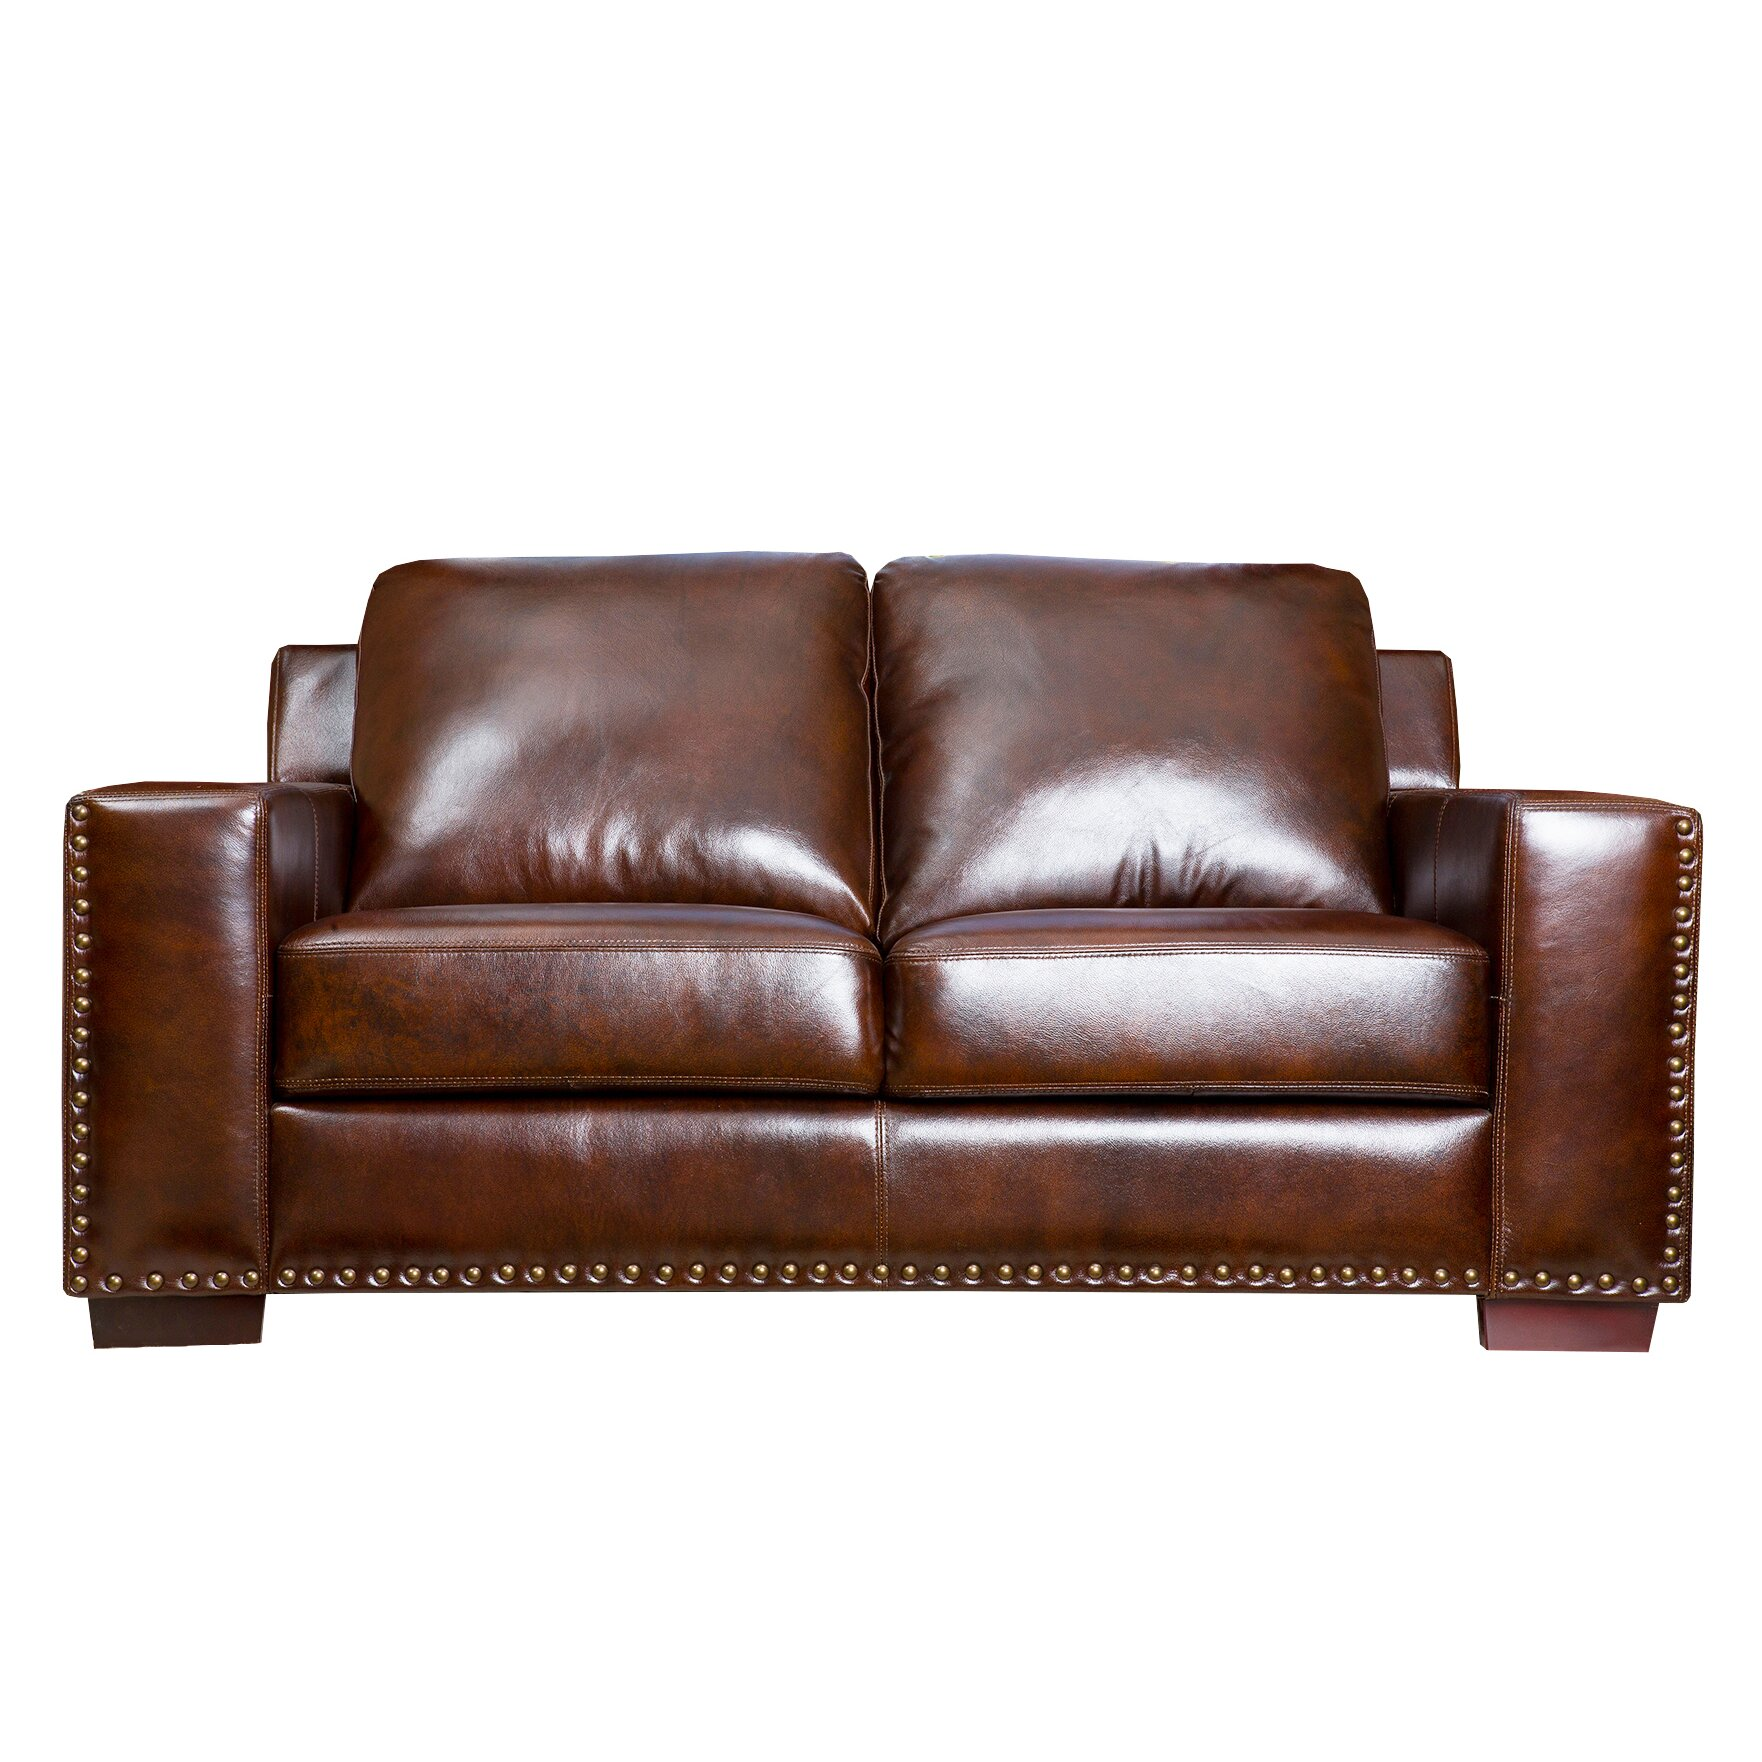 Darby Home Co William Leather Sofa And Loveseat Set Reviews